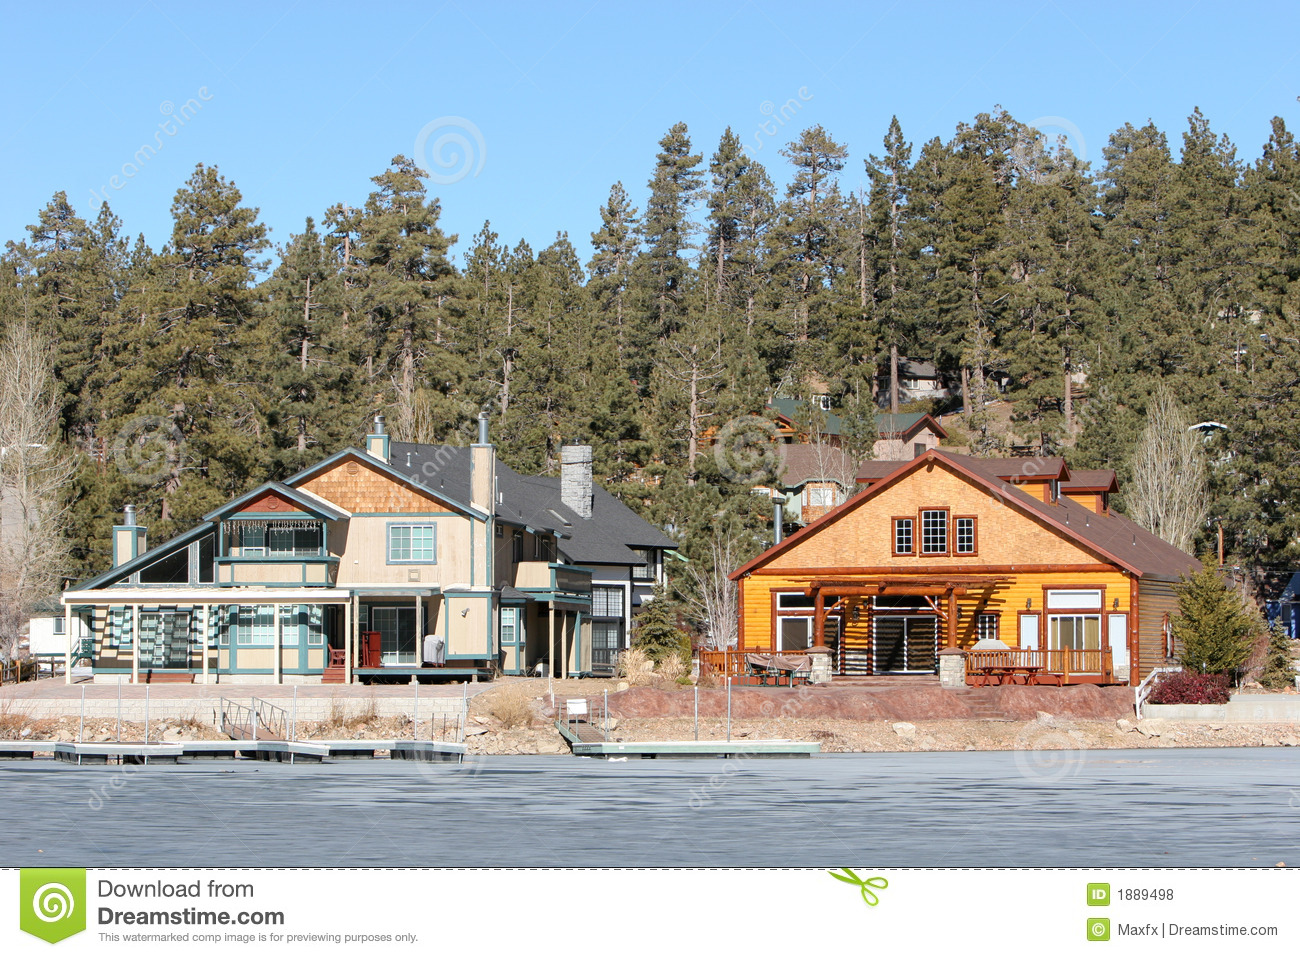 Log cabin on a lake royalty free stock photography image 7866317 - Log Cabins By The Lake Royalty Free Stock Photos Image 1889498 Full Resolution